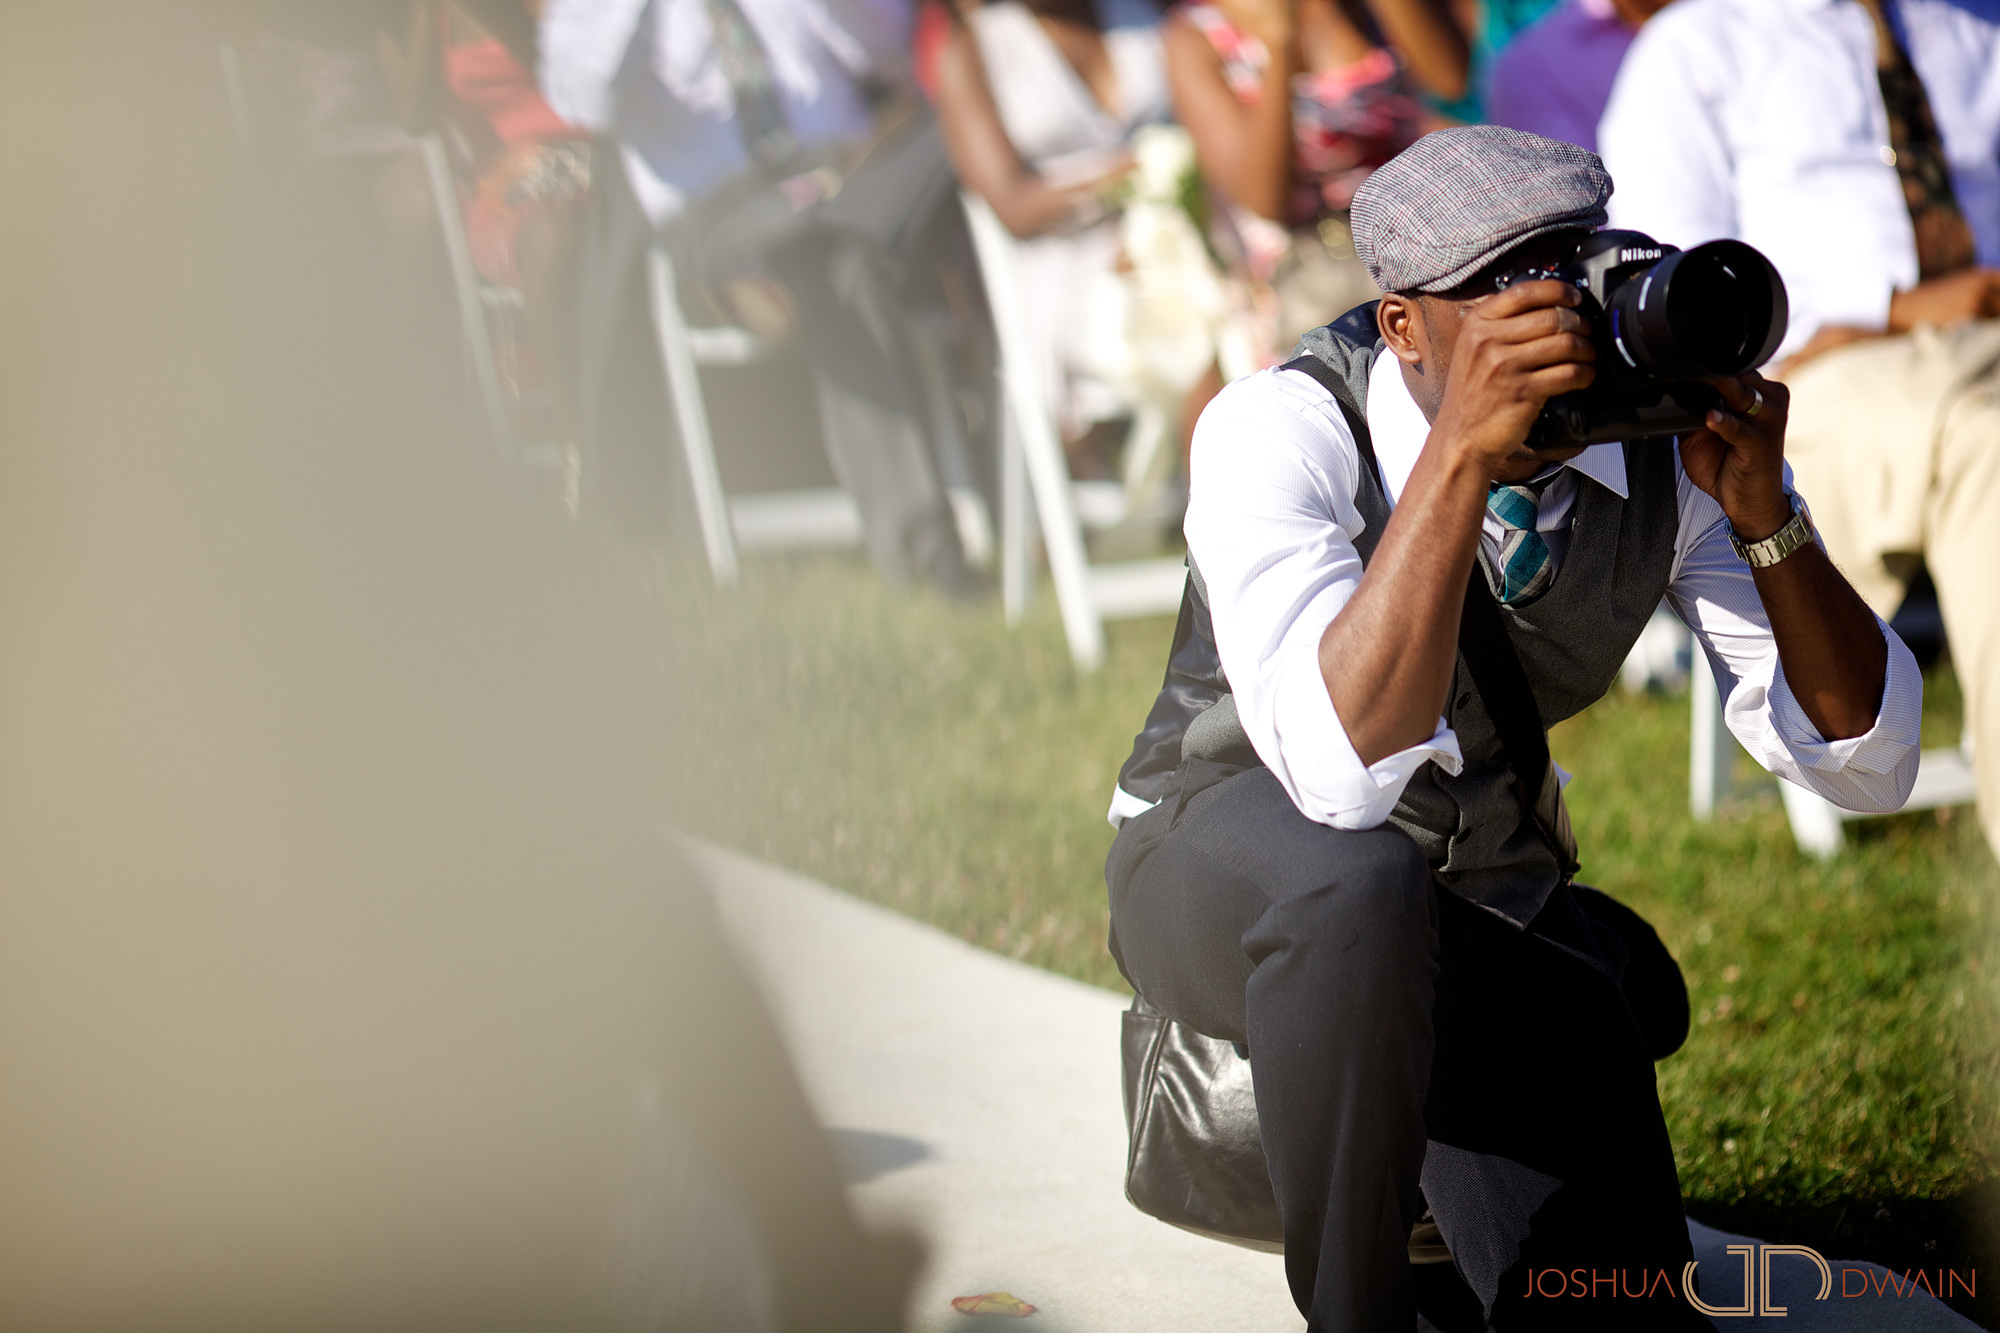 Joshua Dwain Photography BTS Page Gallery Image